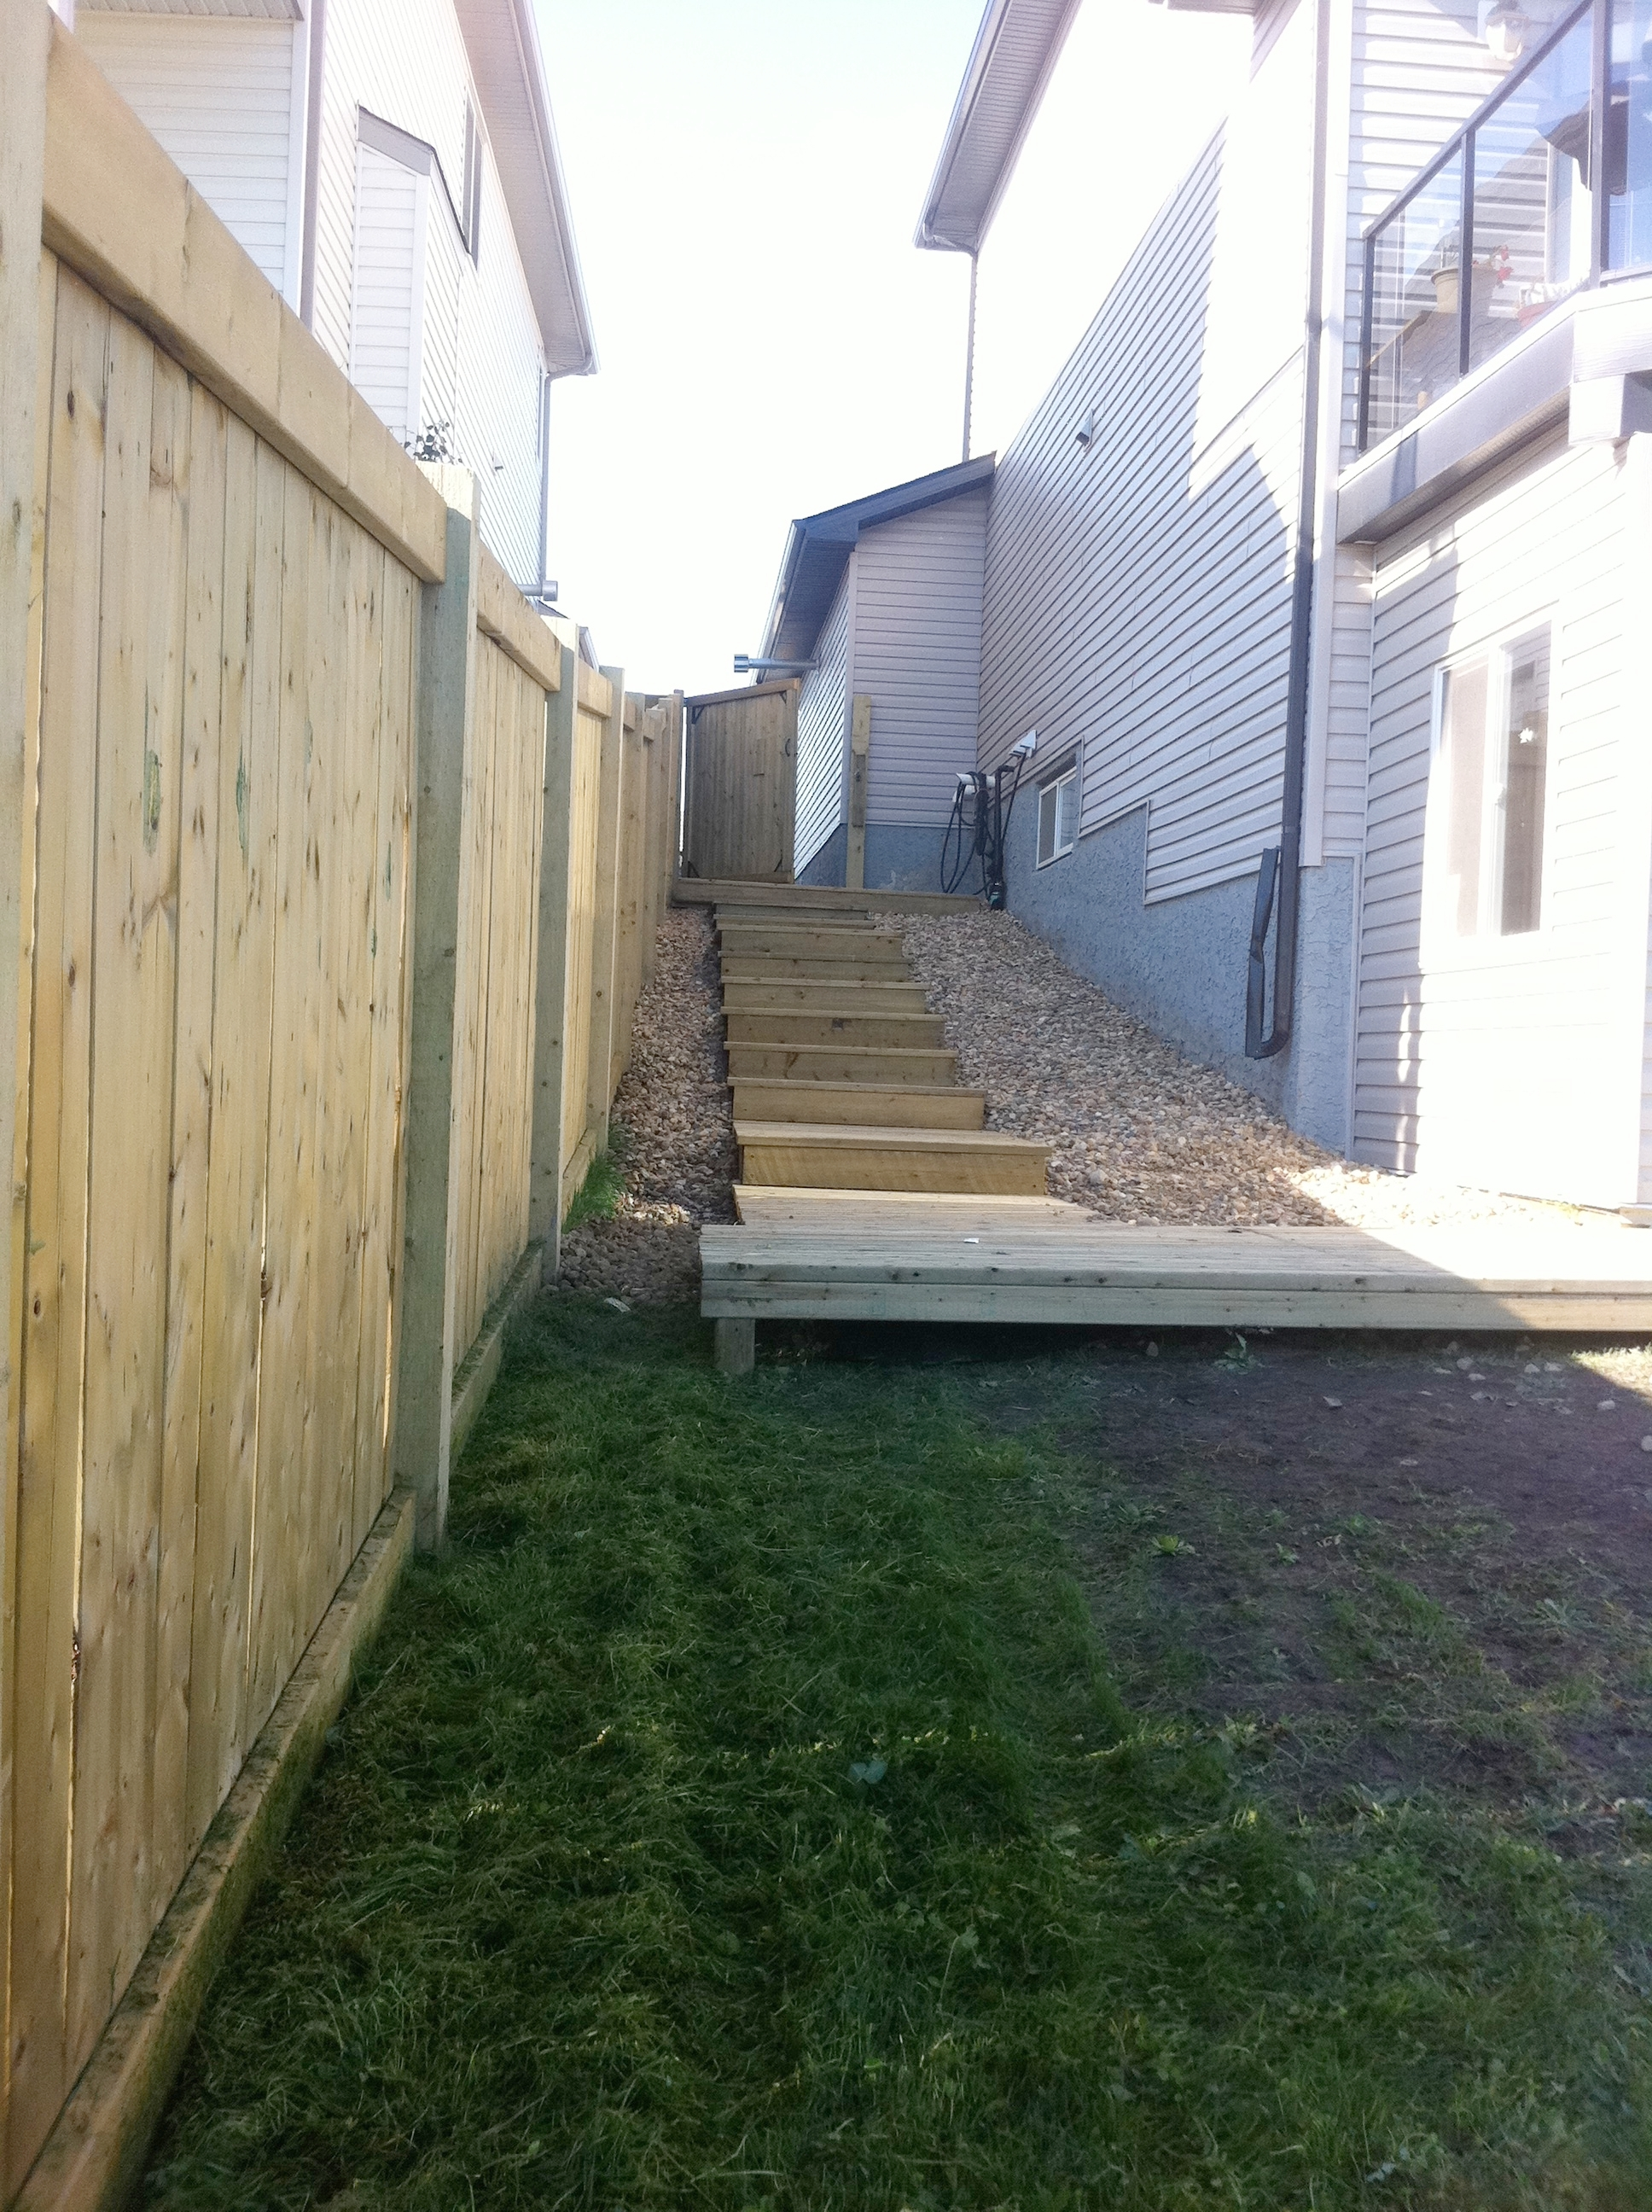 Stairway/Retaining Wall Project - After